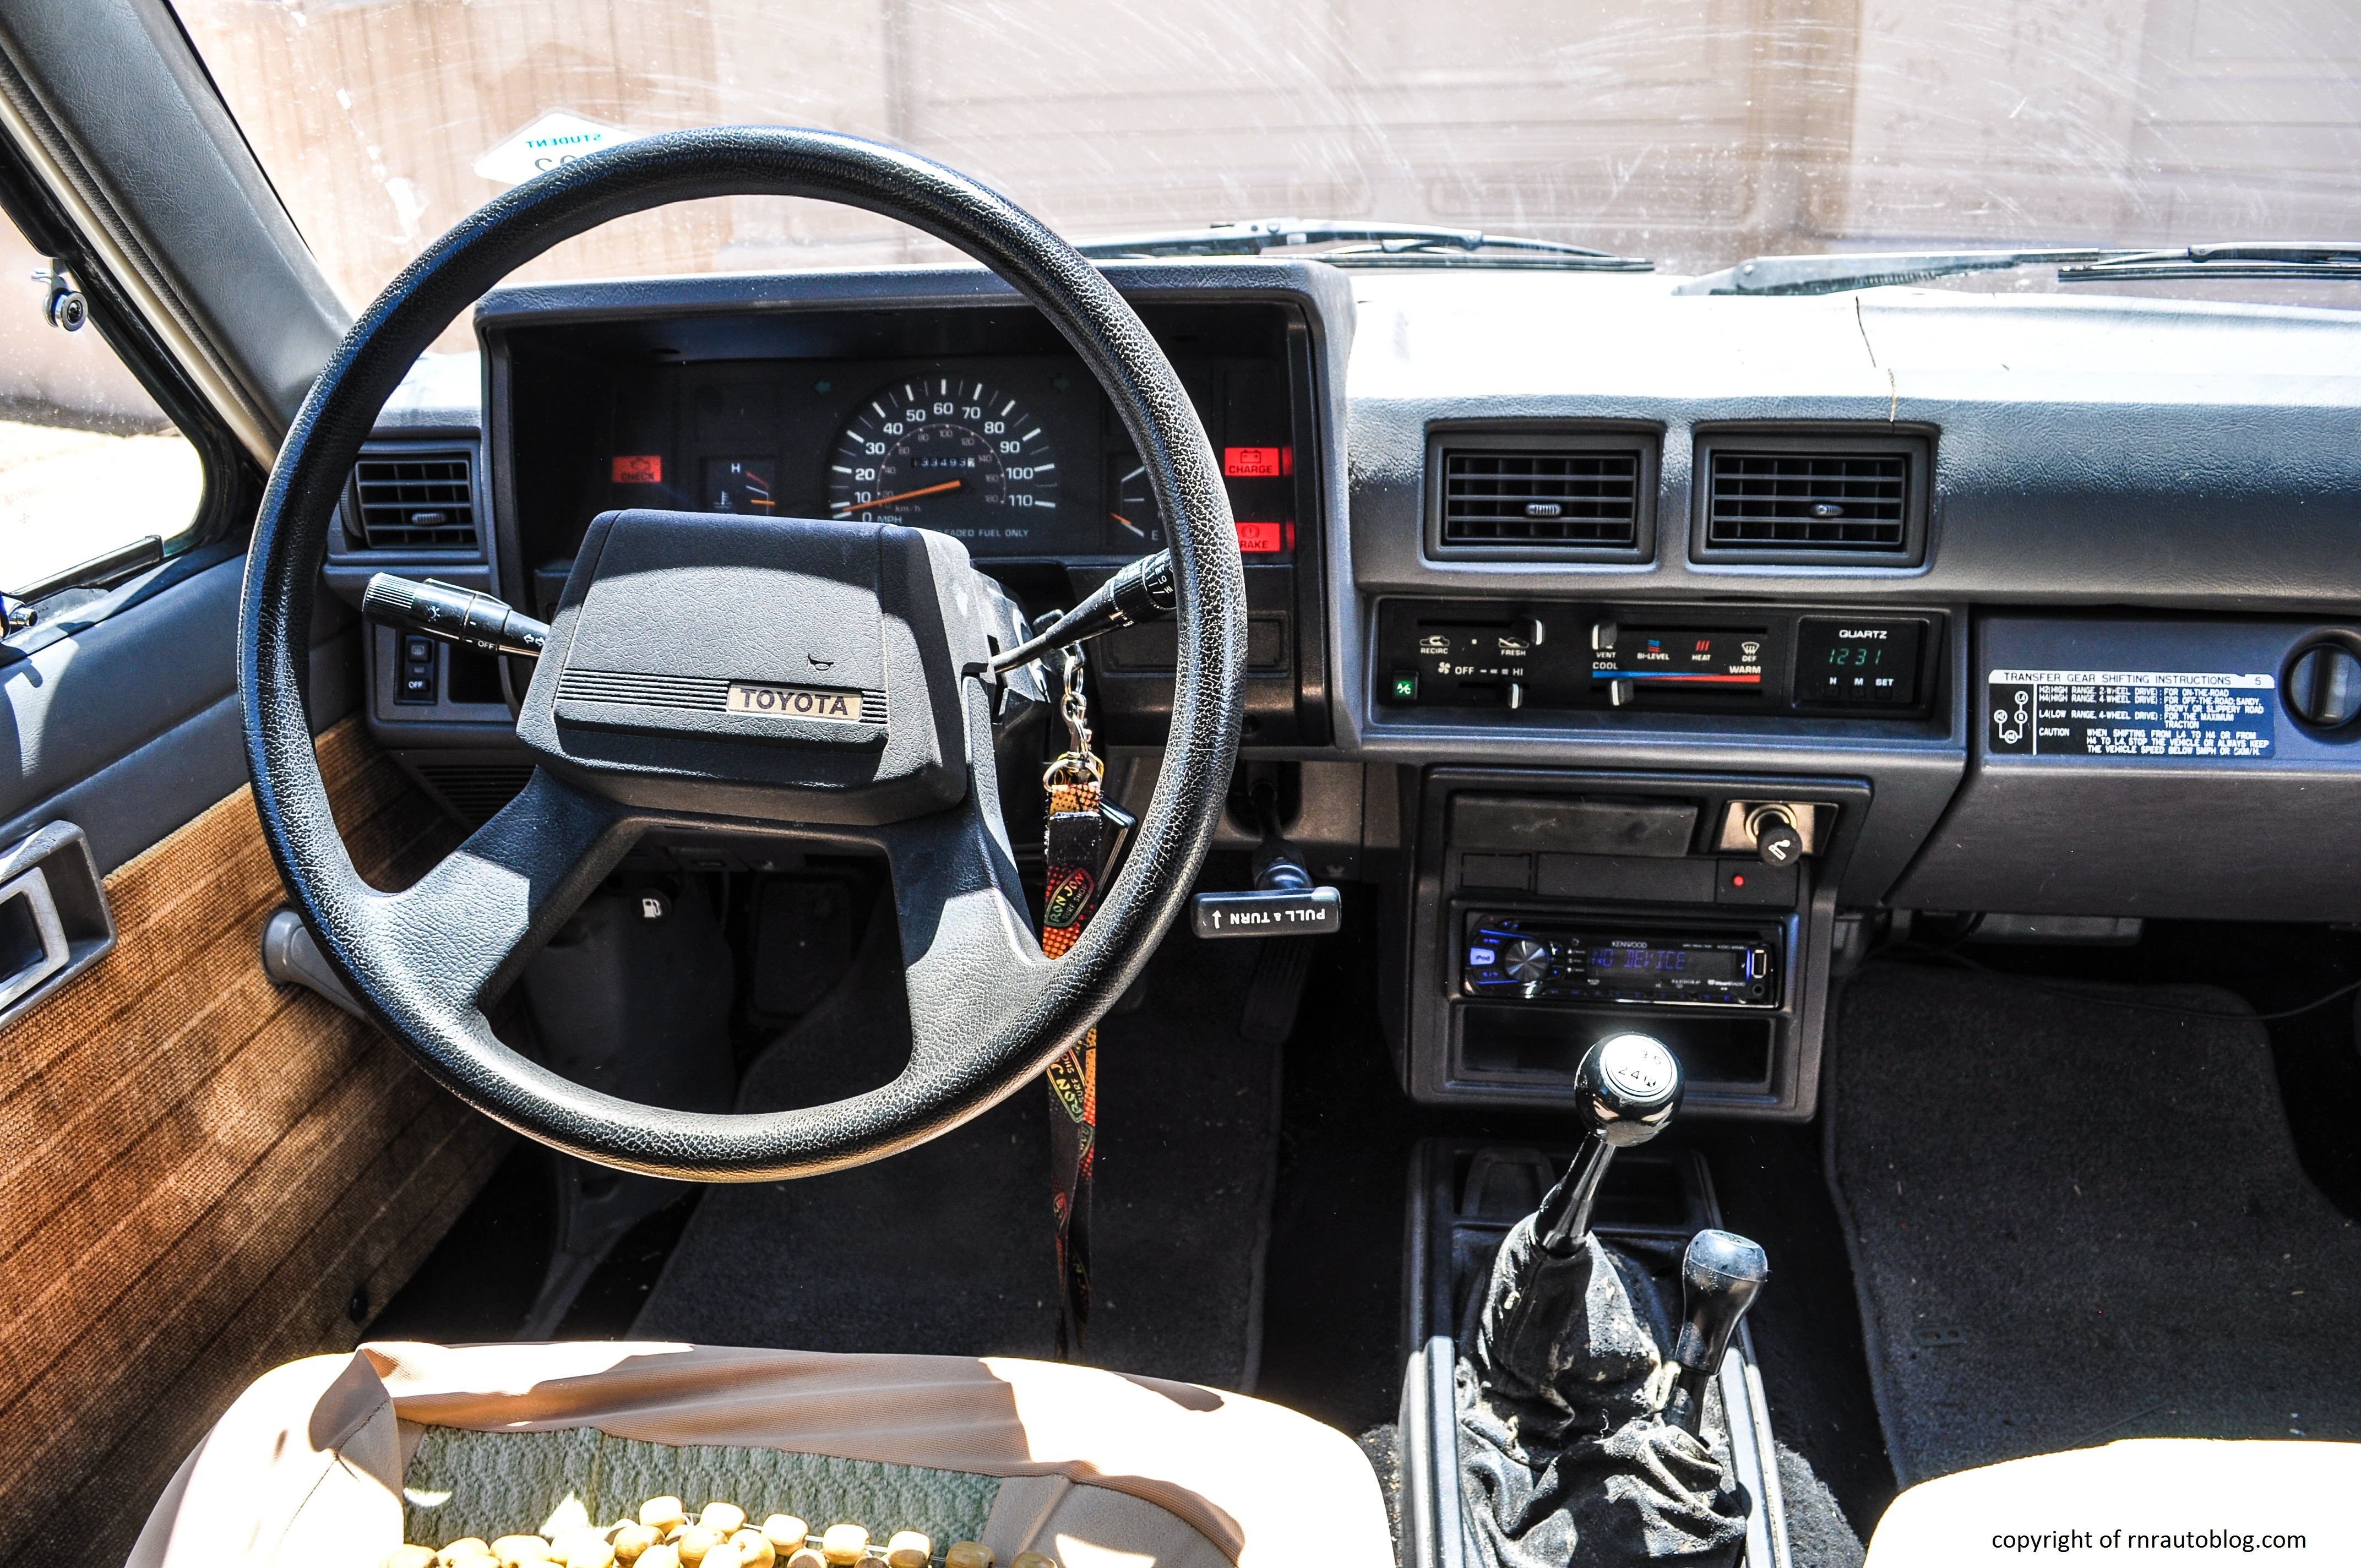 1986 toyota 4runner sr5 review rnr automotive blog for 1985 toyota pickup interior parts